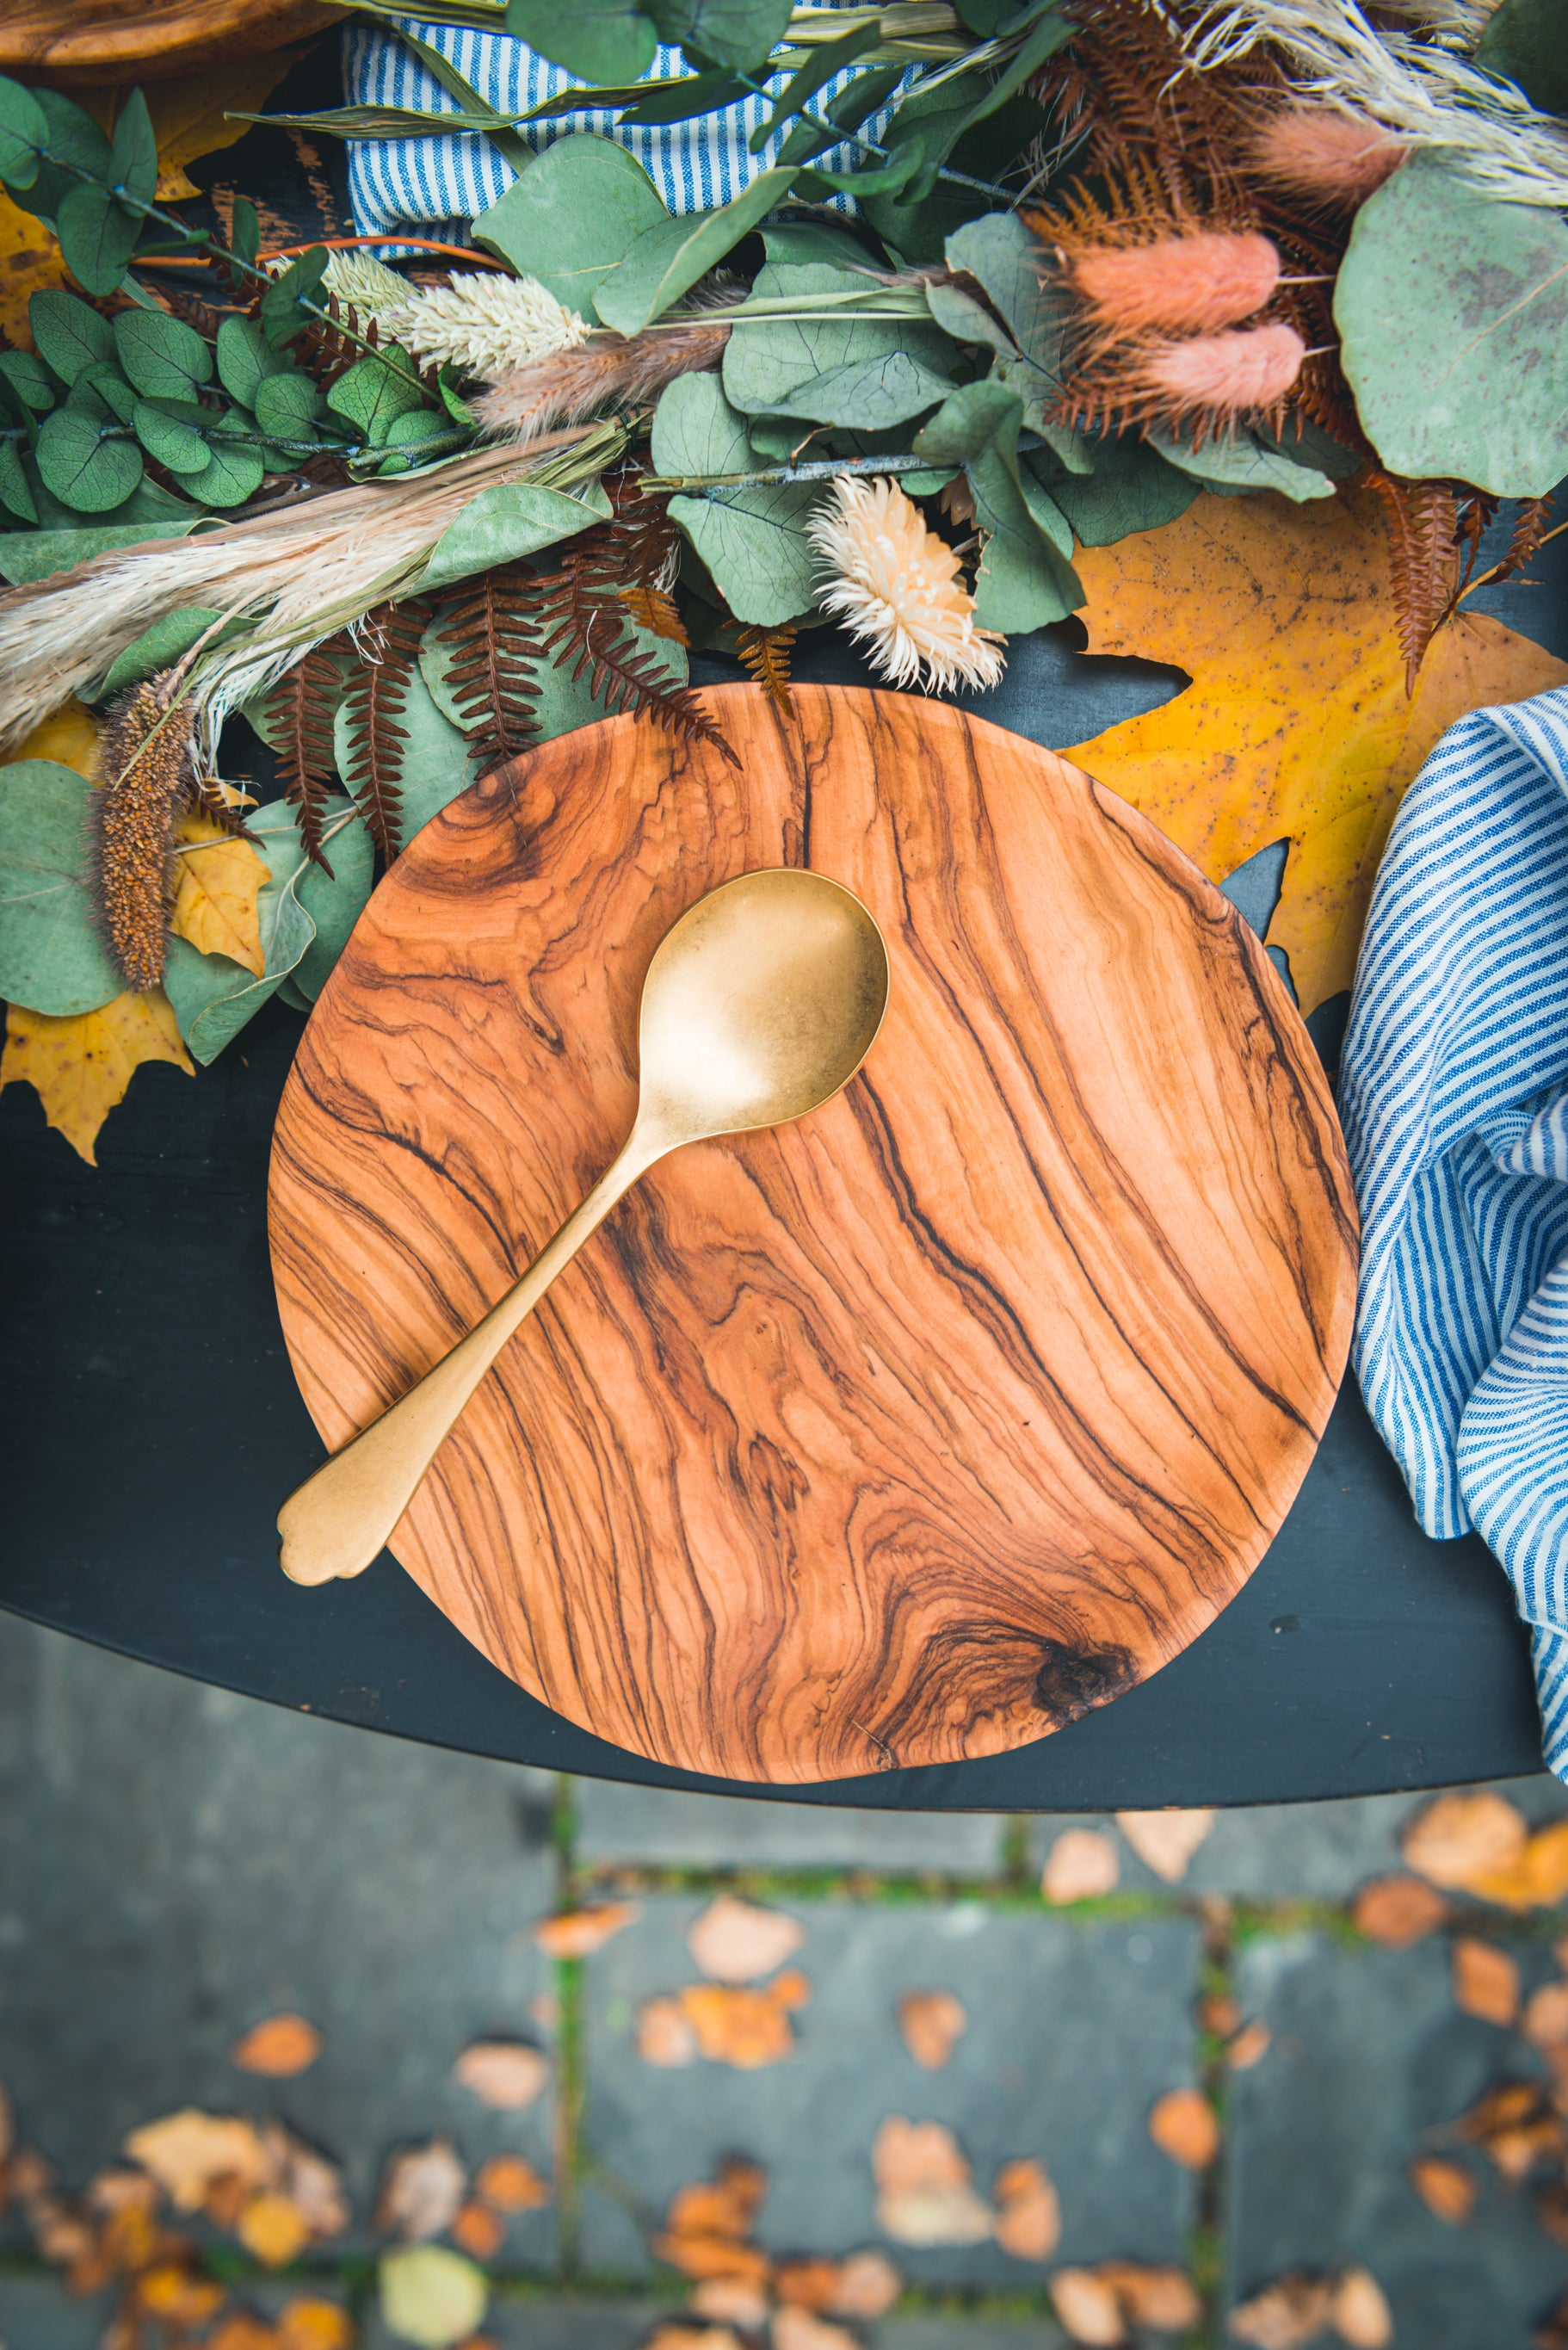 Shop Wt Olive Wood Plates Trays At Weston Table